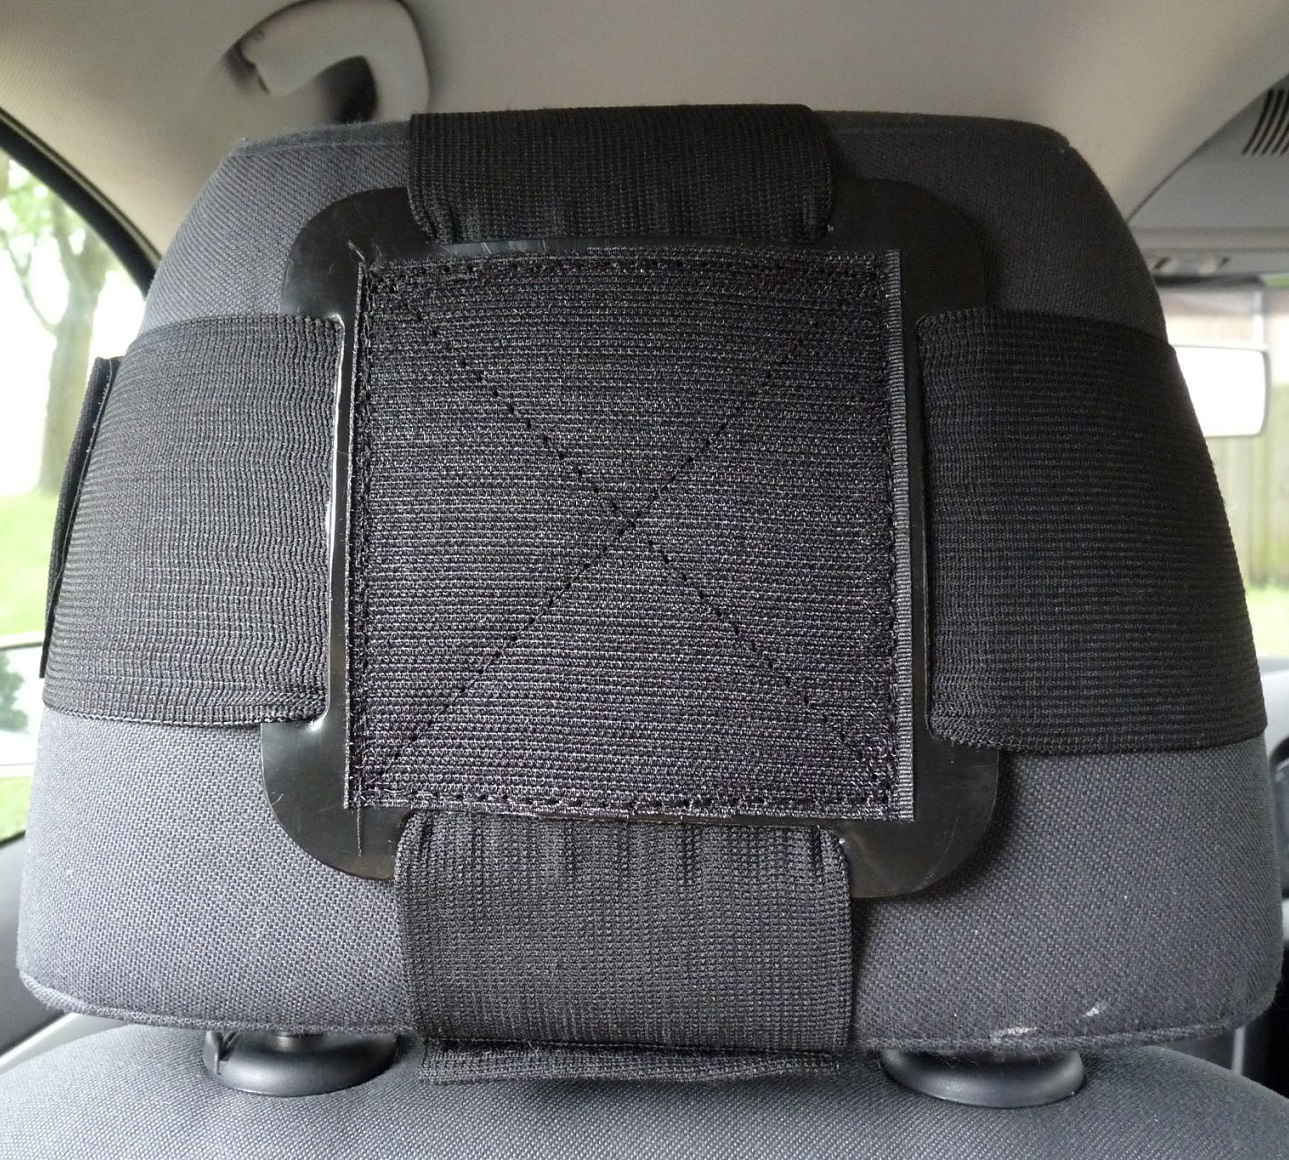 Heightening Luxury Mat Support Cushion Wedge Booster Foam Ideal for Car Office